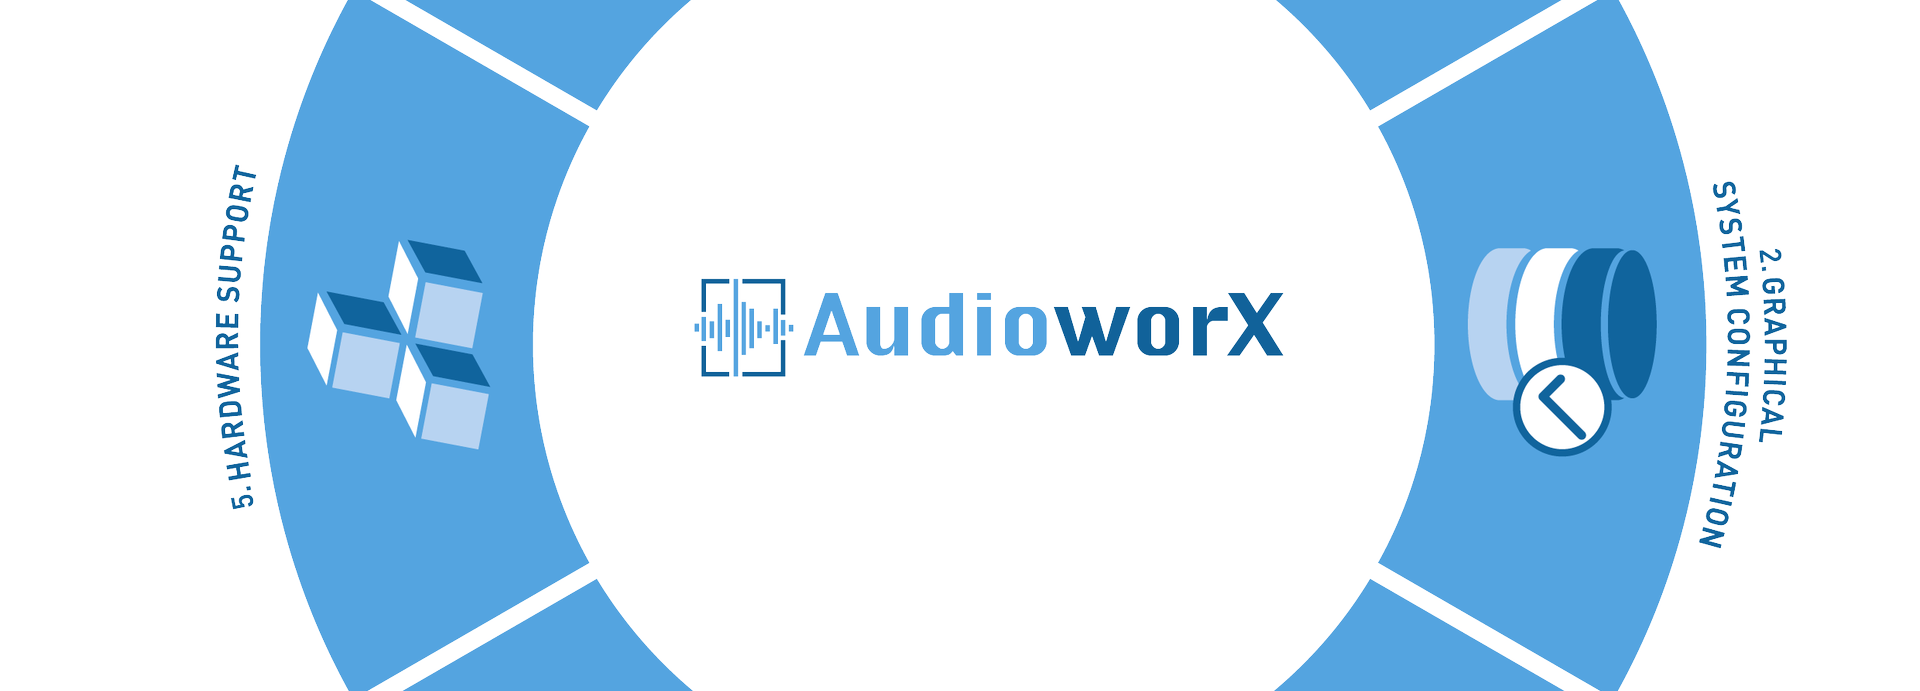 AudioworX-Workflow-Grafik